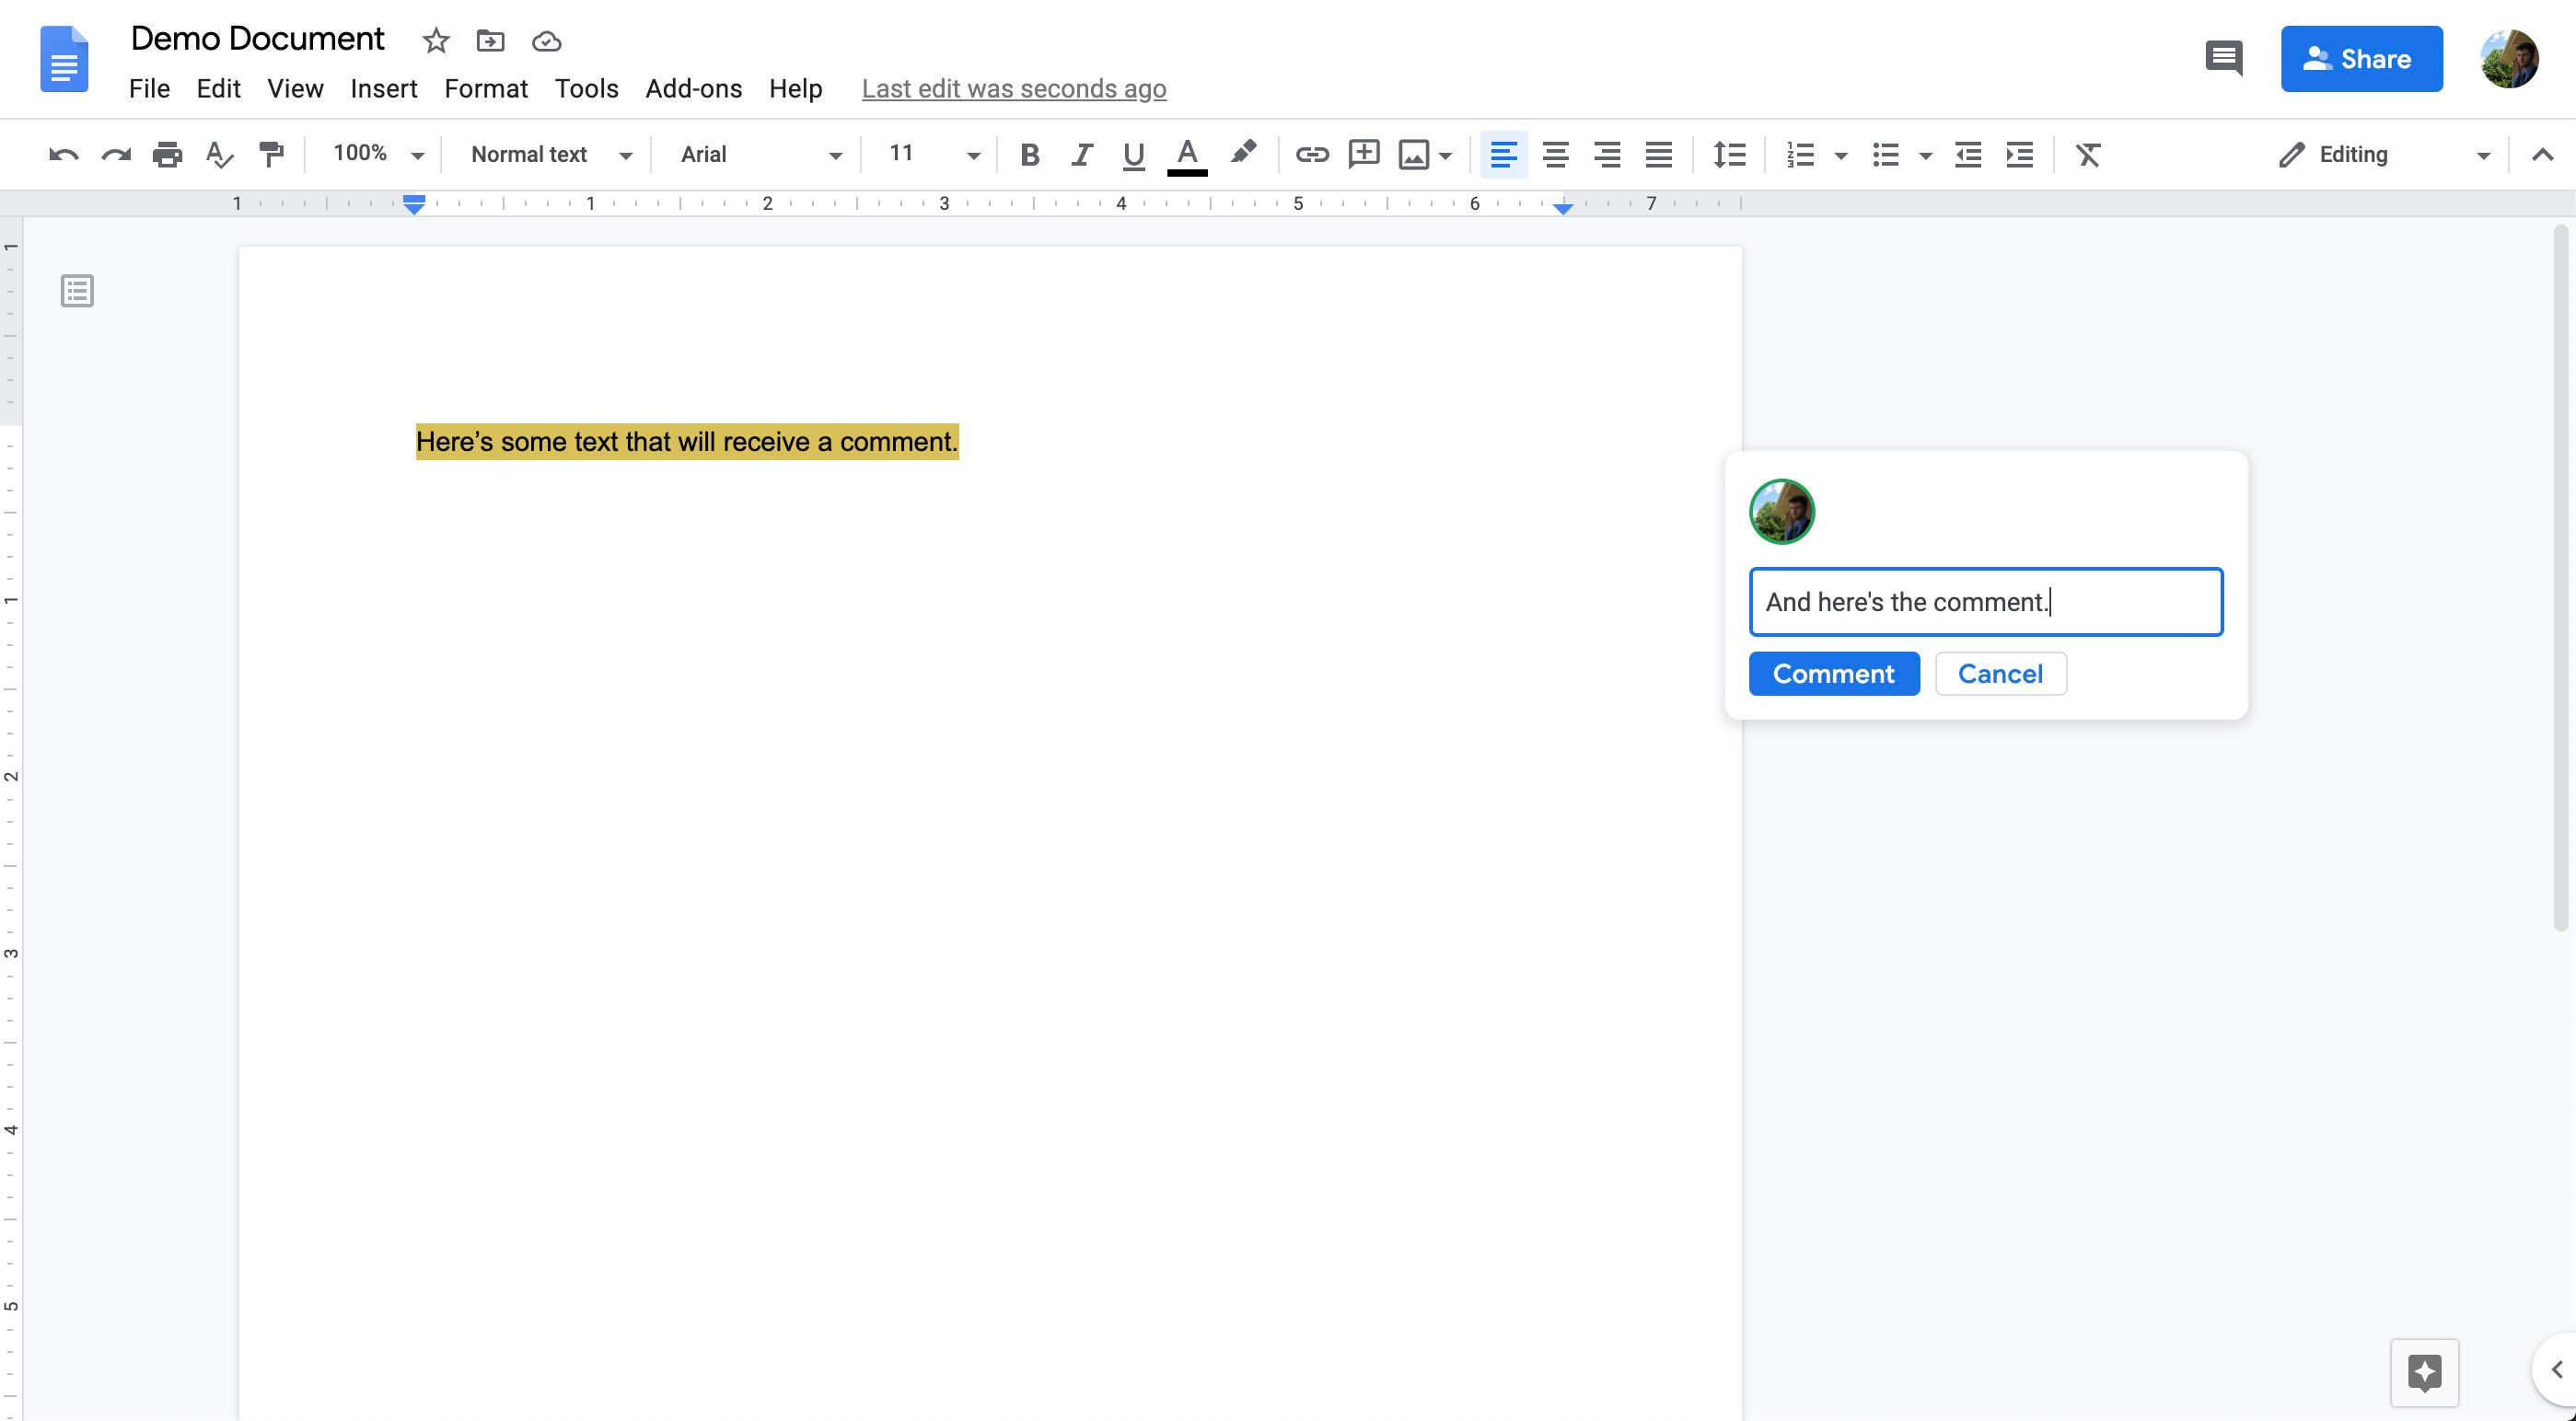 The comment window in Google Docs